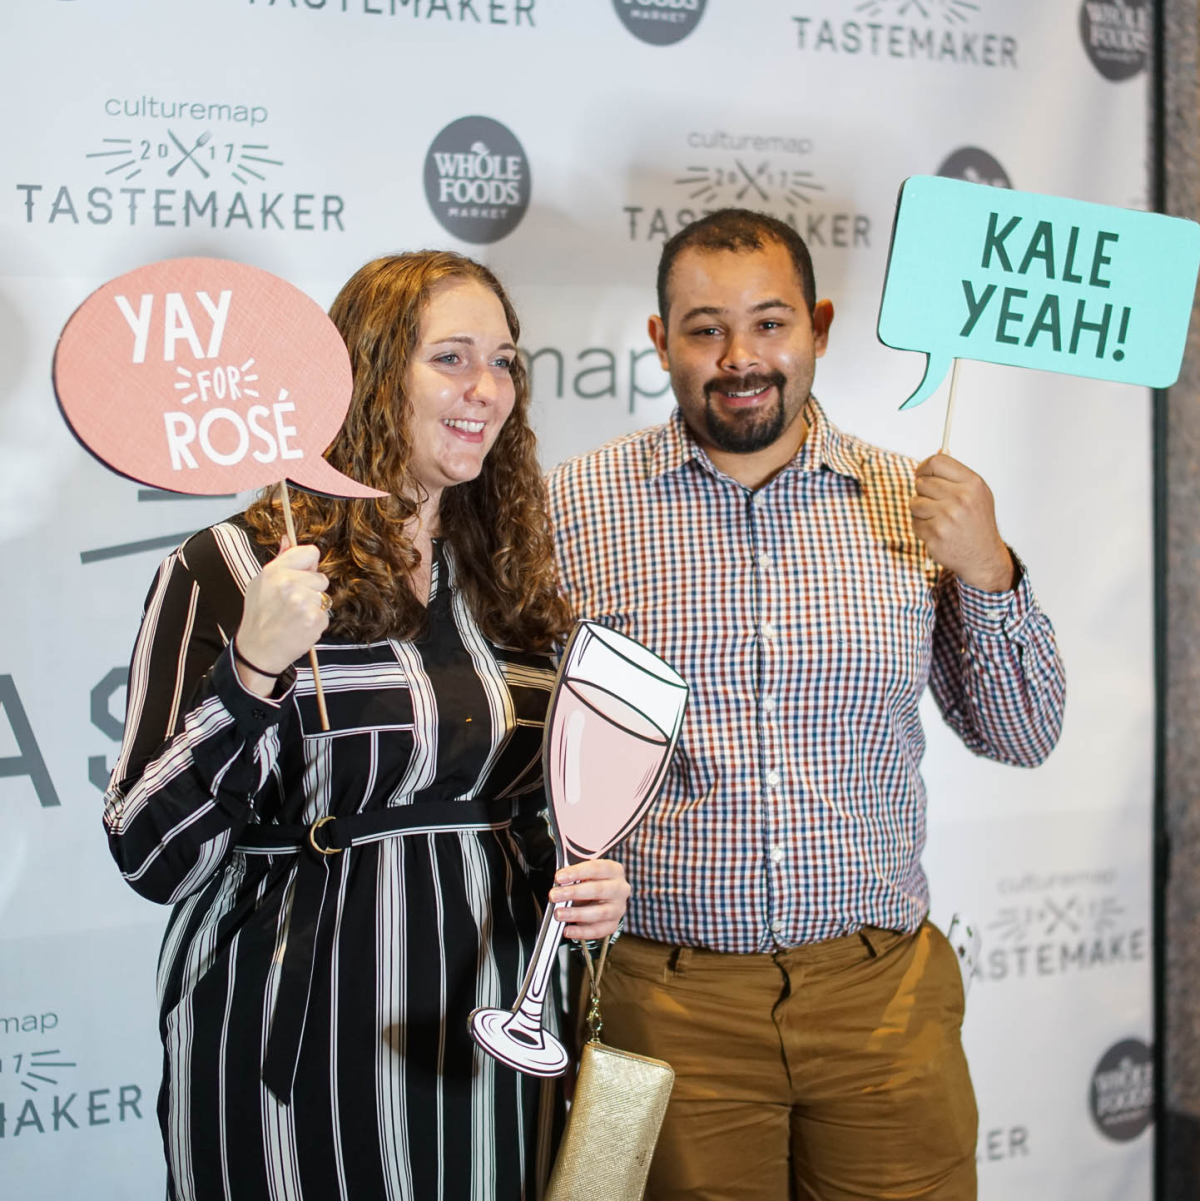 CultureMap Tastemaker Awards 2017 Whole Foods Photo Booth W.H. Harris Marie Smyth